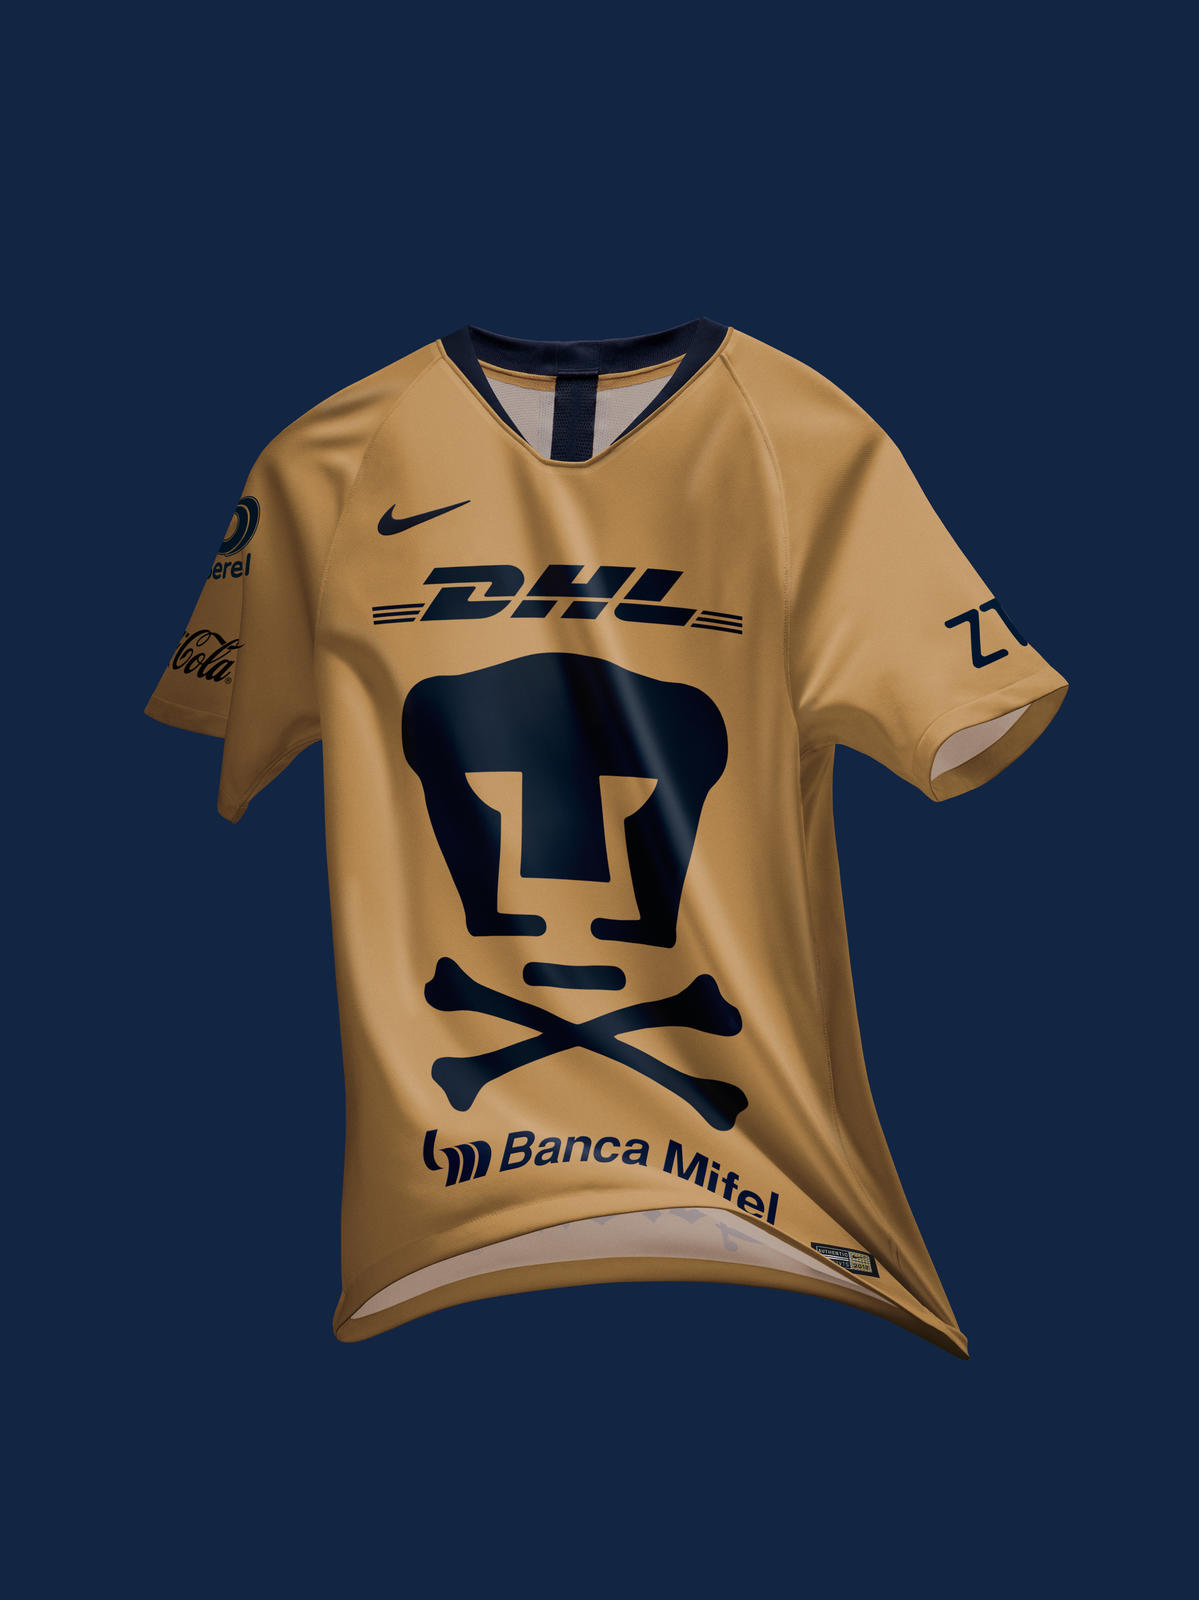 811fff45c Pumas 2018 2019 Nike Day of the Dead Soccer Jersey, Football Kit, Shirt,